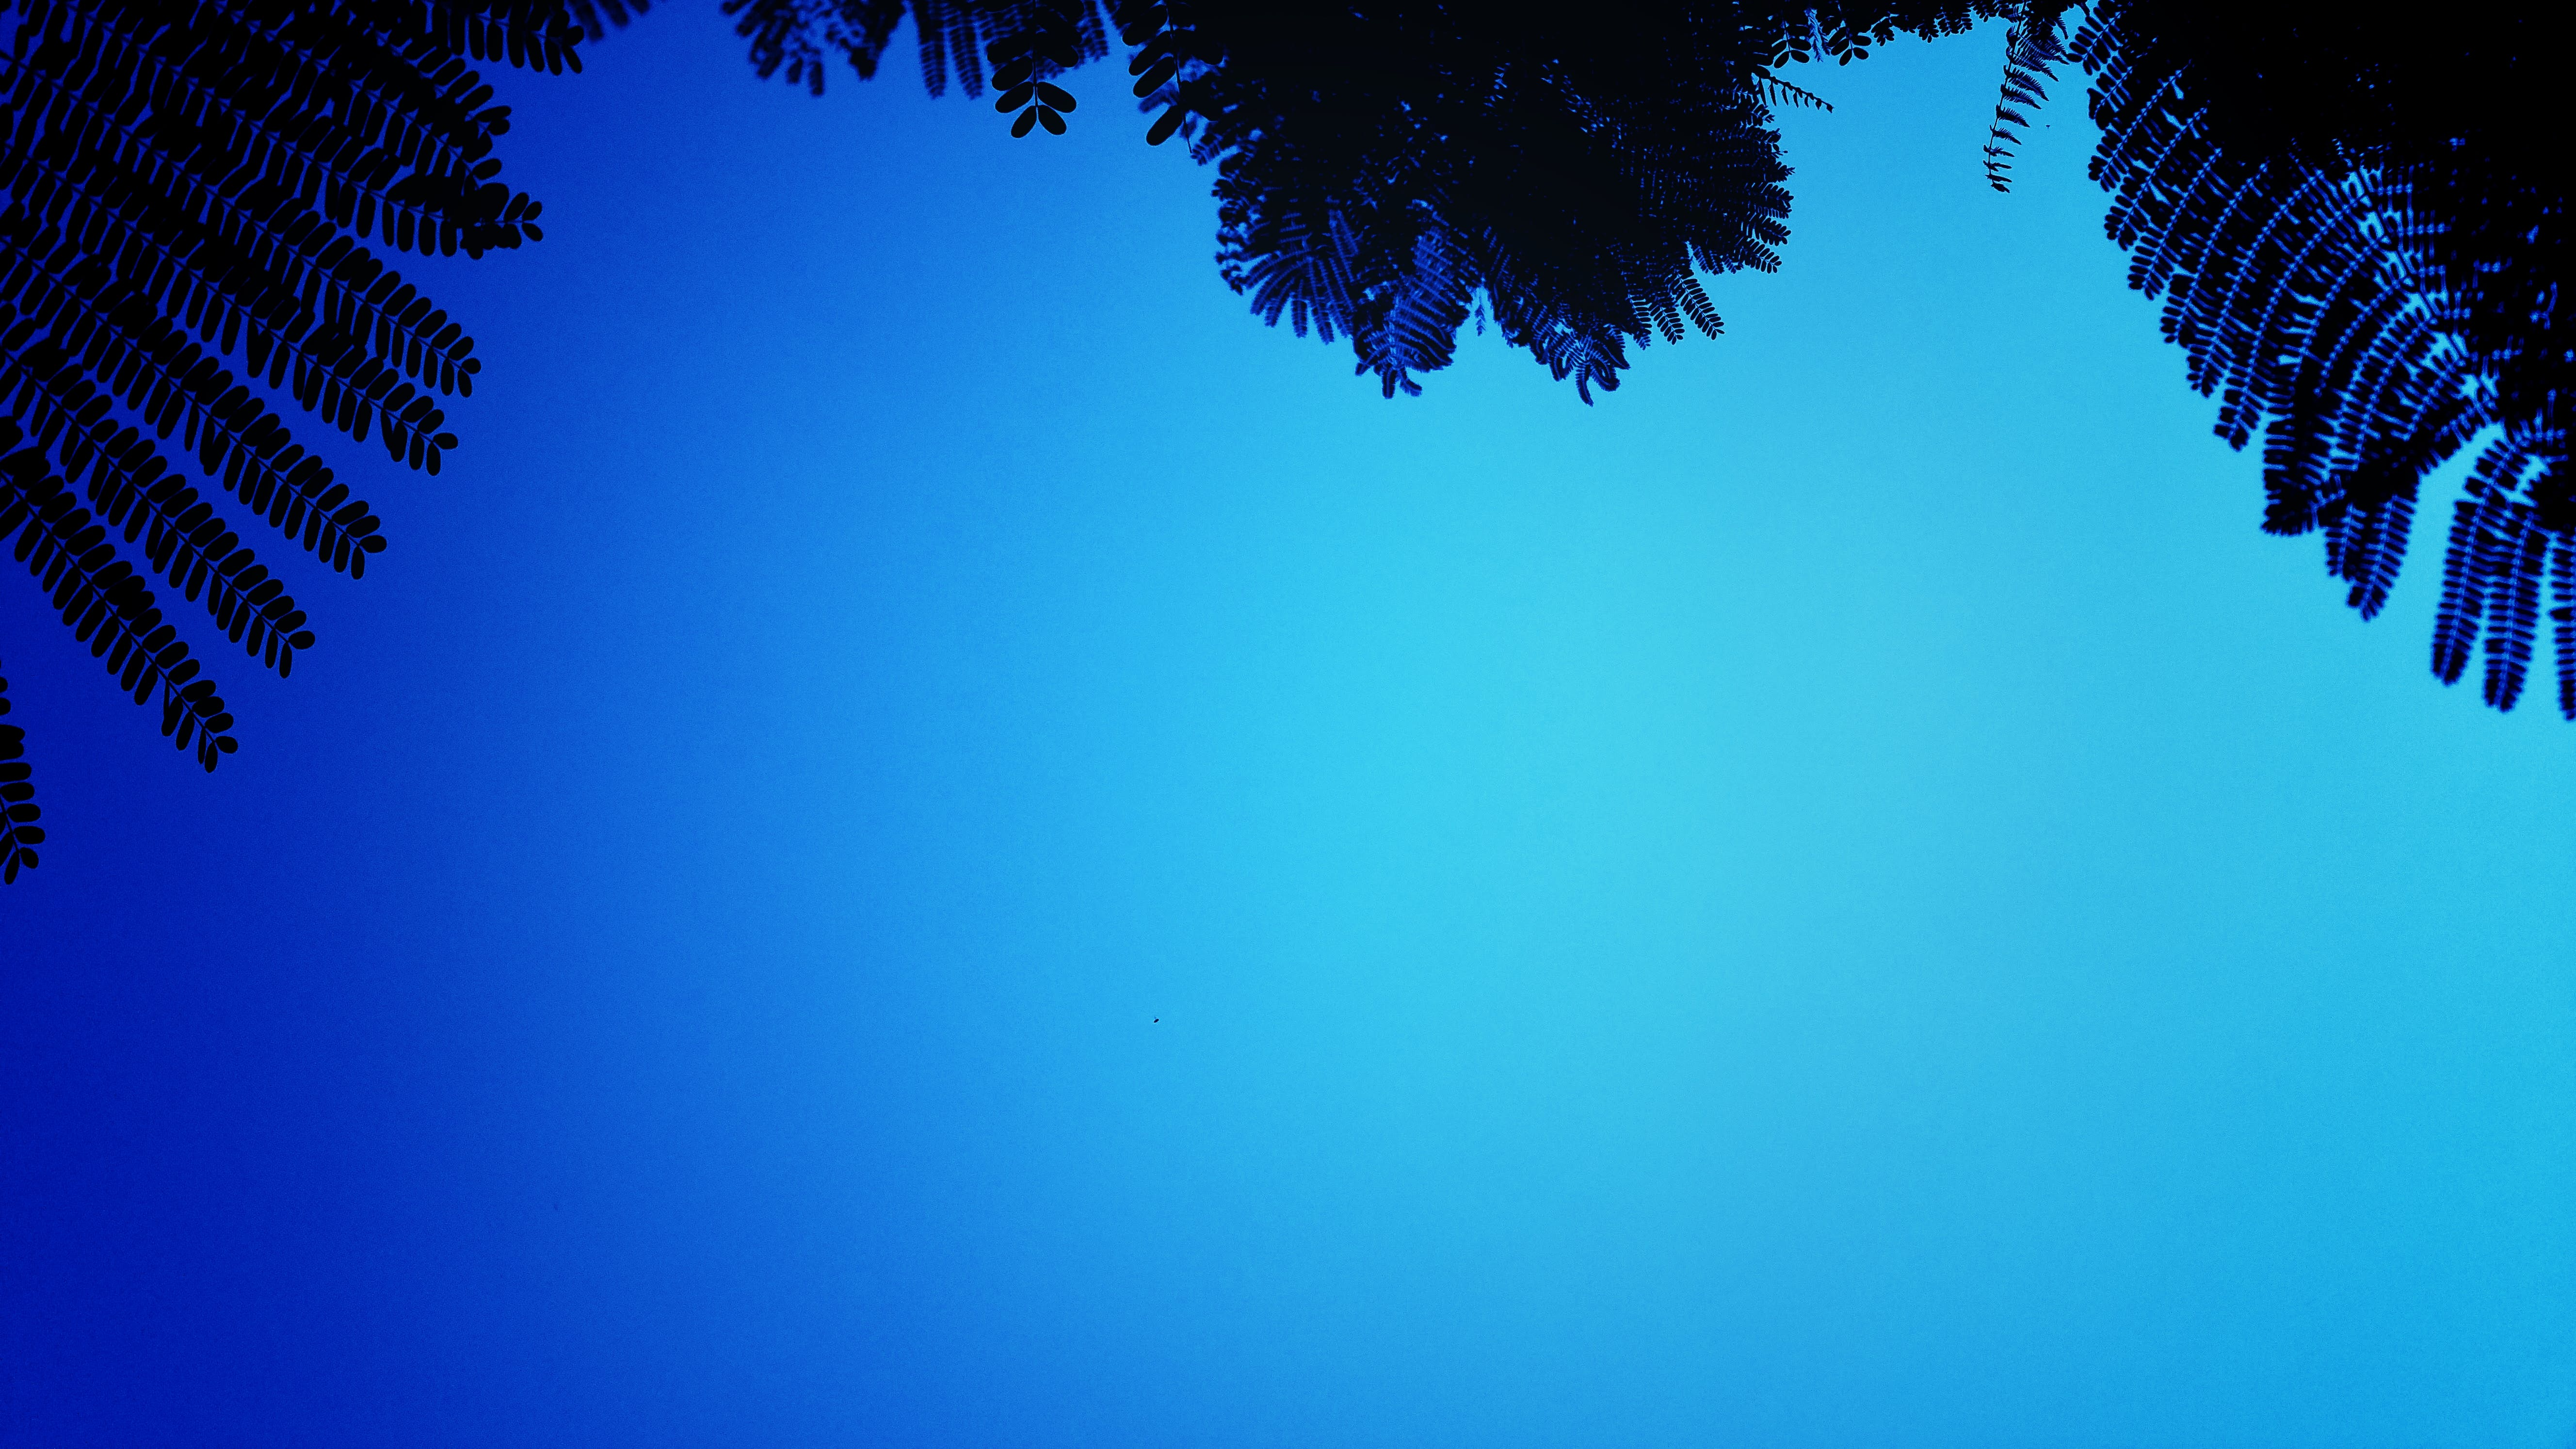 Free stock photo of black, blue, blue sky, clear sky